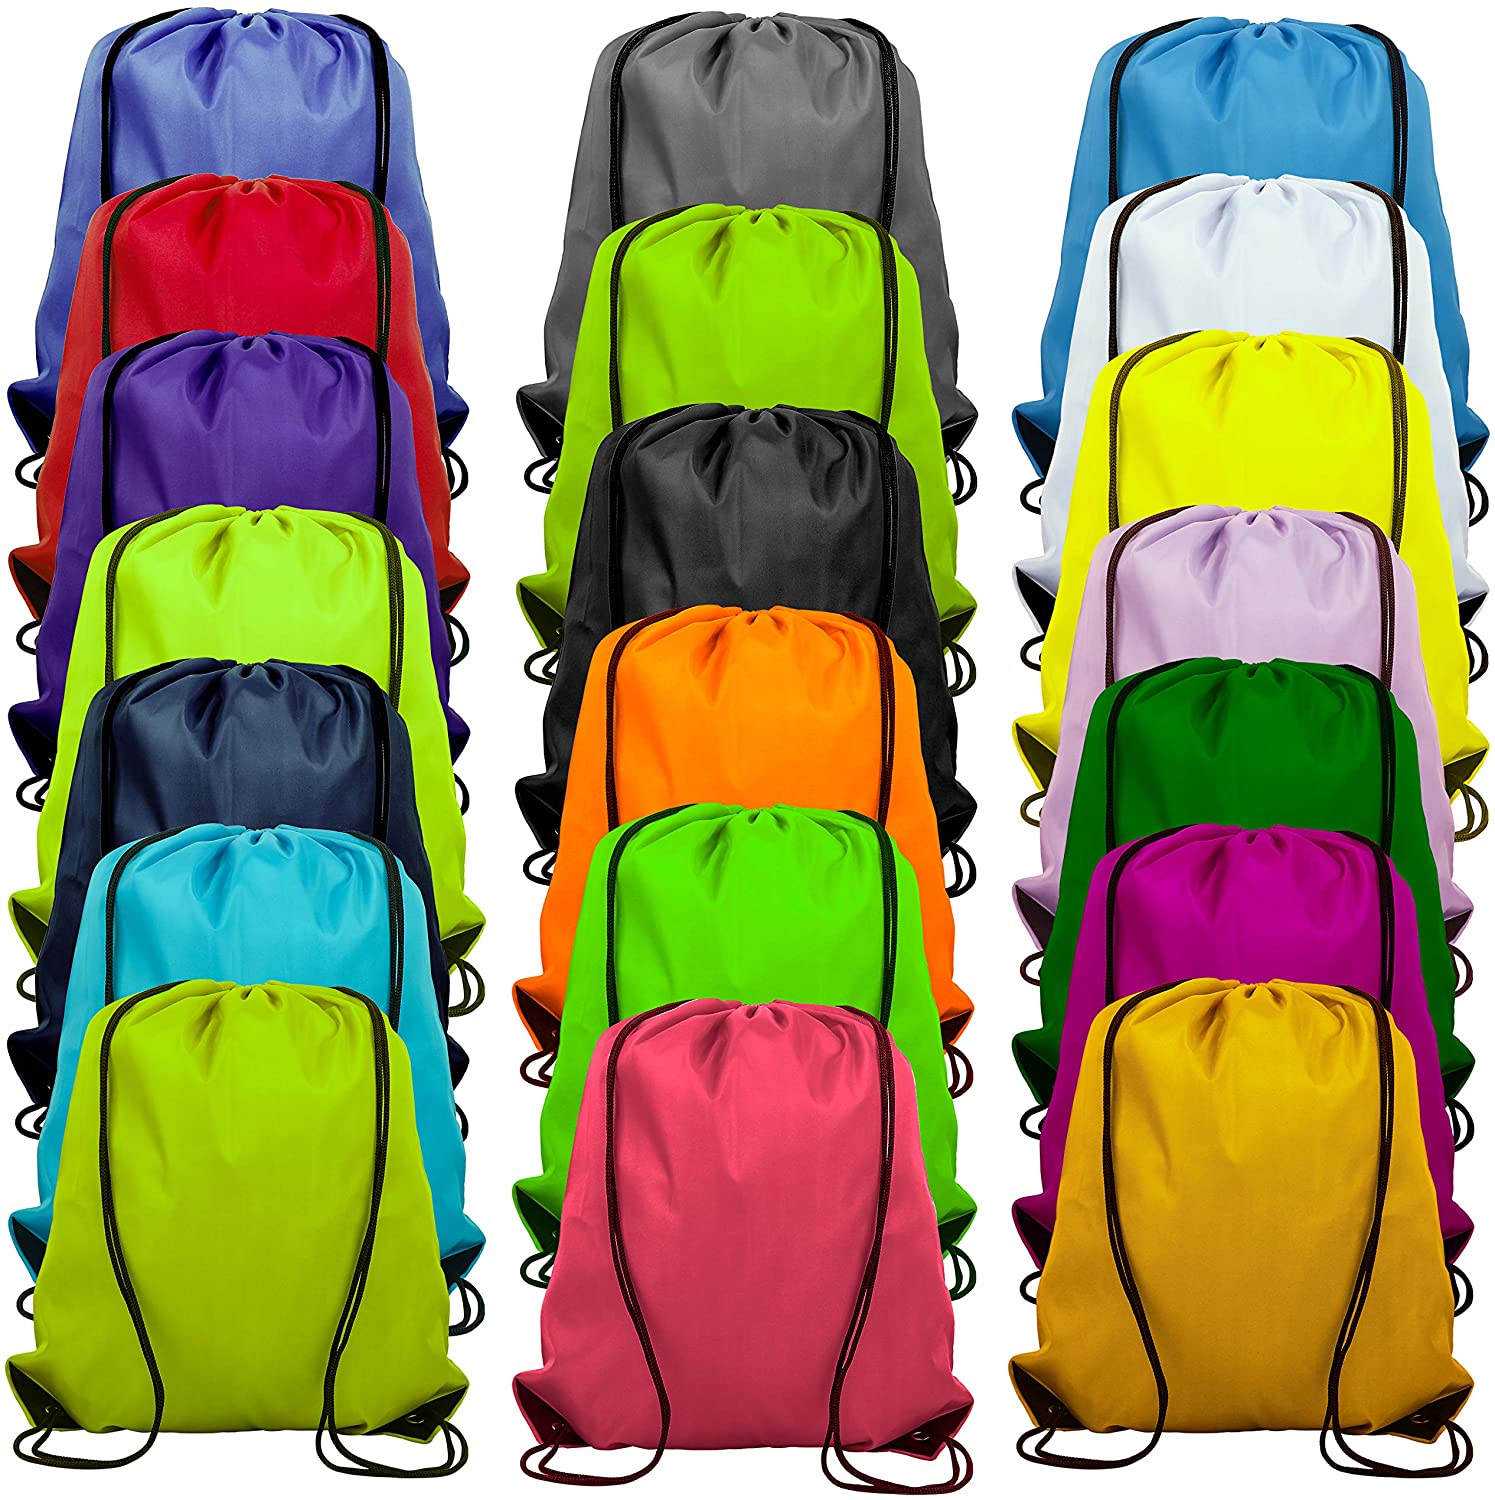 20 Colors Drawstring Backpack Bags Sack Pack Cinch Tote Sport Storage Polyester Bag for Gym Traveling